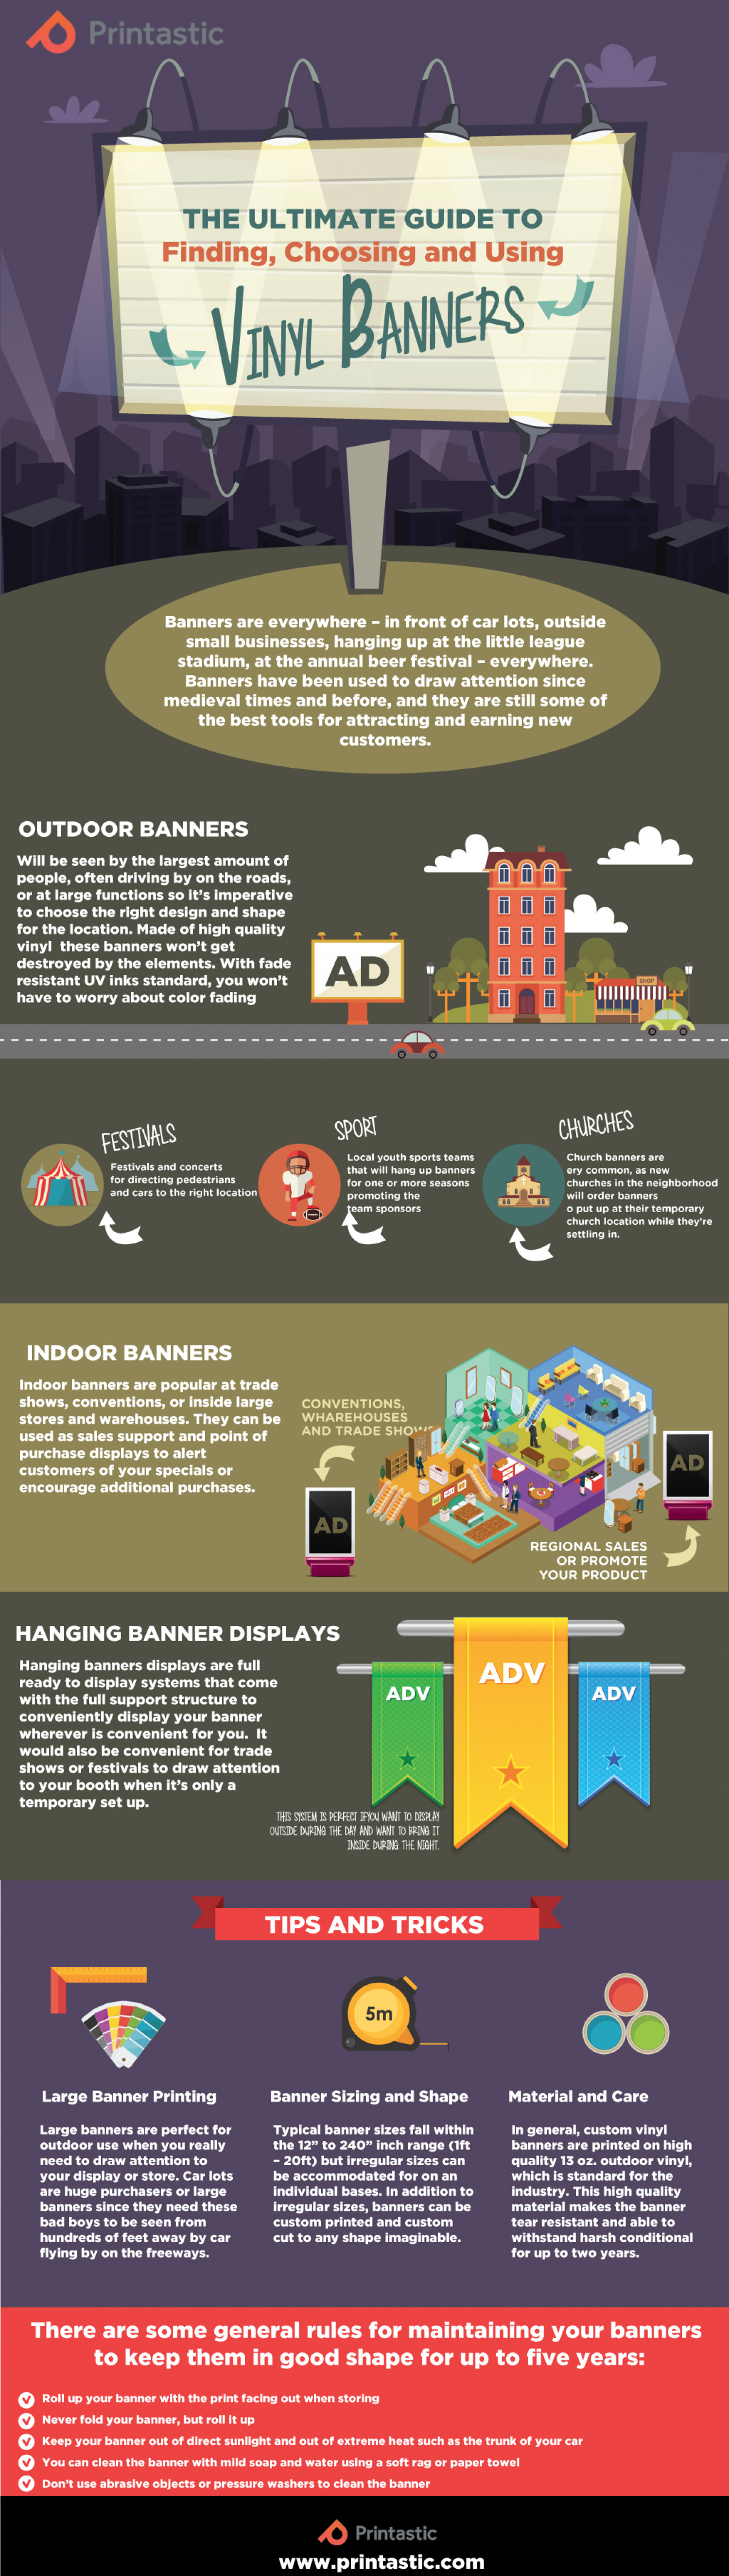 The Ultimate Guide to Finding, Choosing & Using Vinyl Banners Infographic